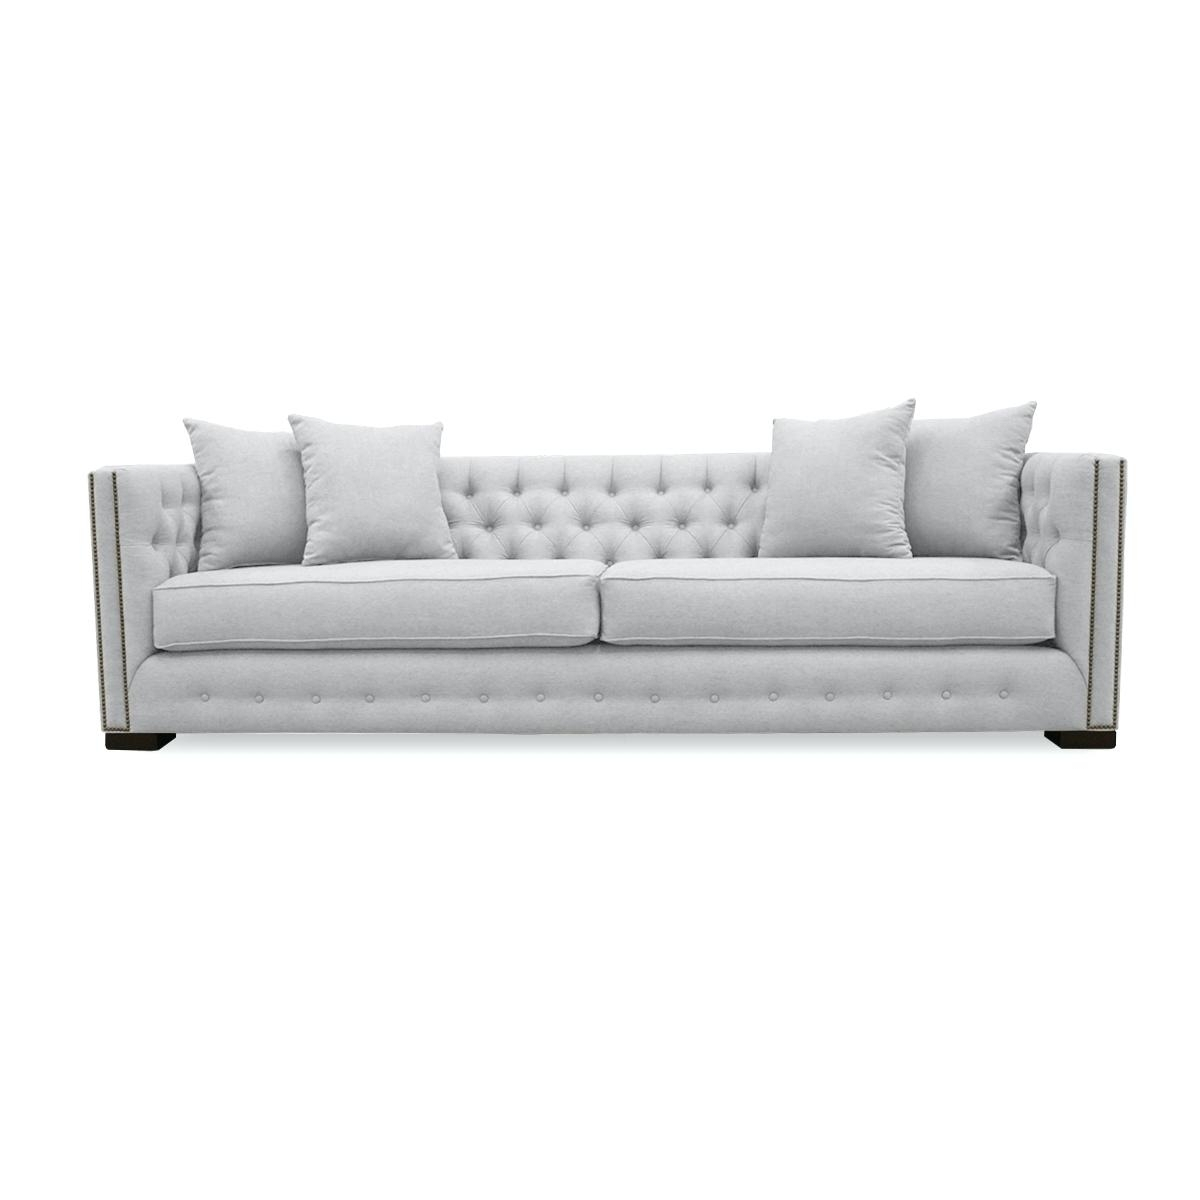 Most Up To Date Salt Lake City Sectional Sofas Intended For Sofa : Grey Tufted Sofa Charcoal Gray Nailhead Light Salt Lake (View 2 of 20)